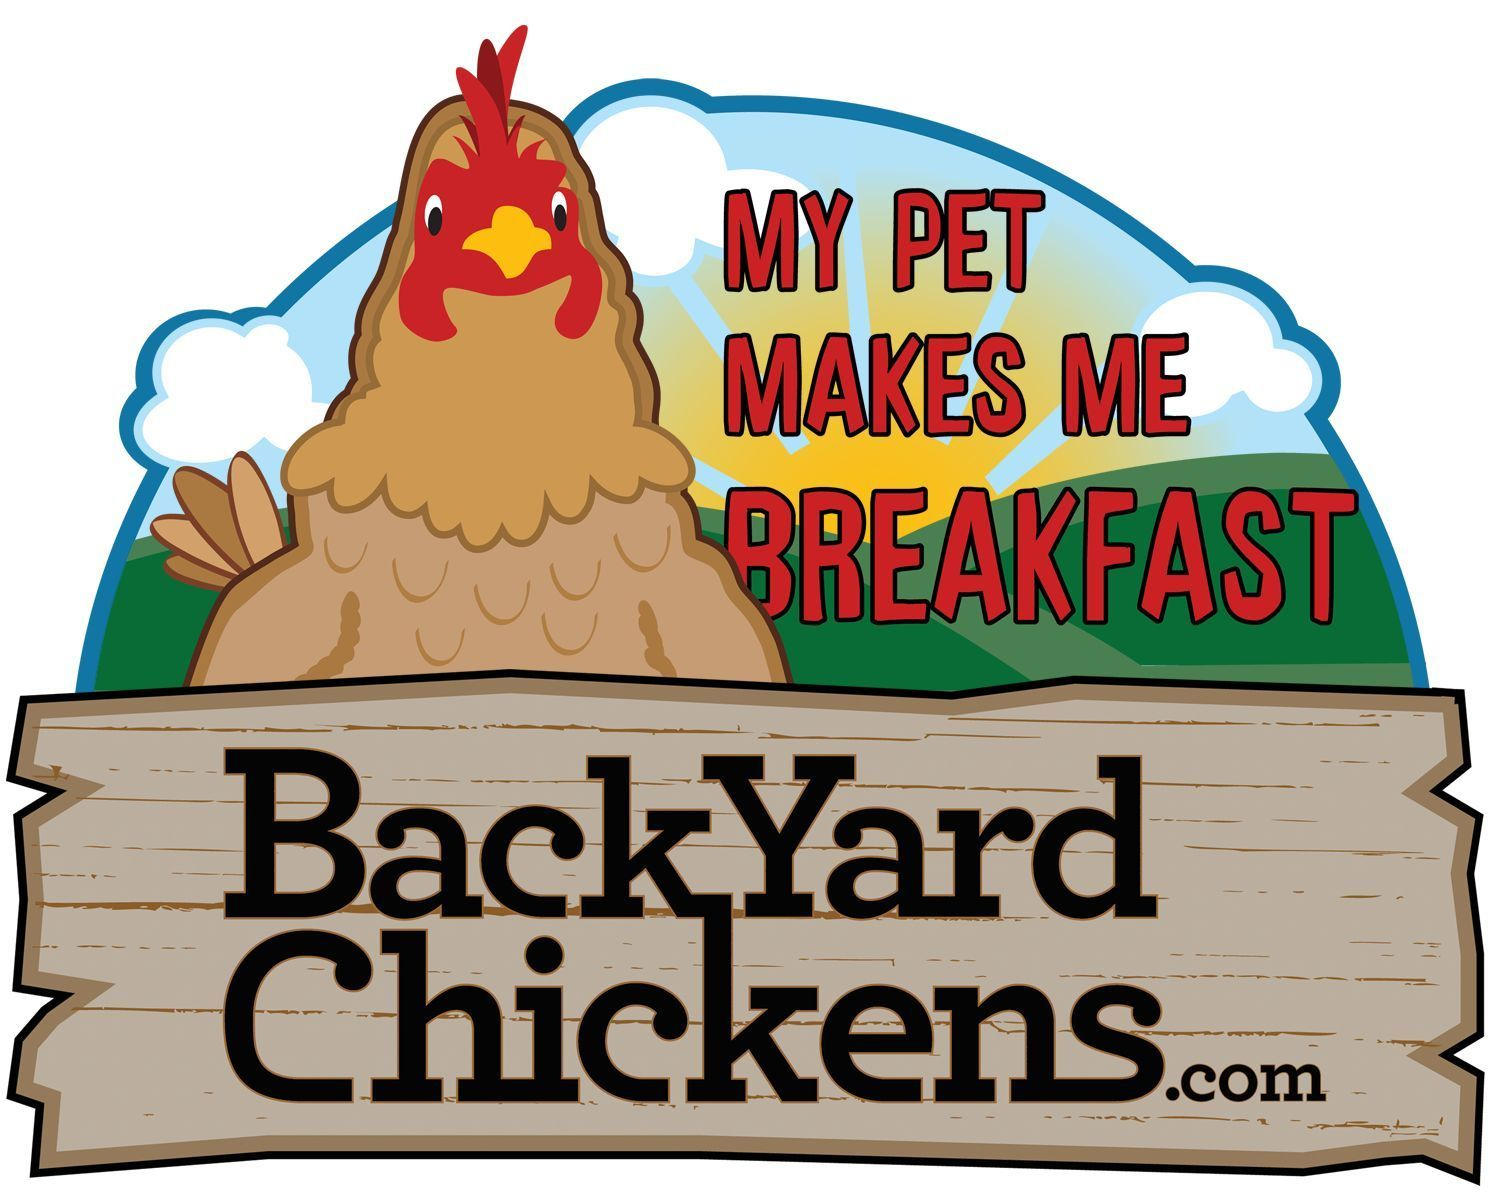 Nifty-Chicken's photos in New Store Items: Travel Mugs, Water Bottles, Pens, & New Tattoos!